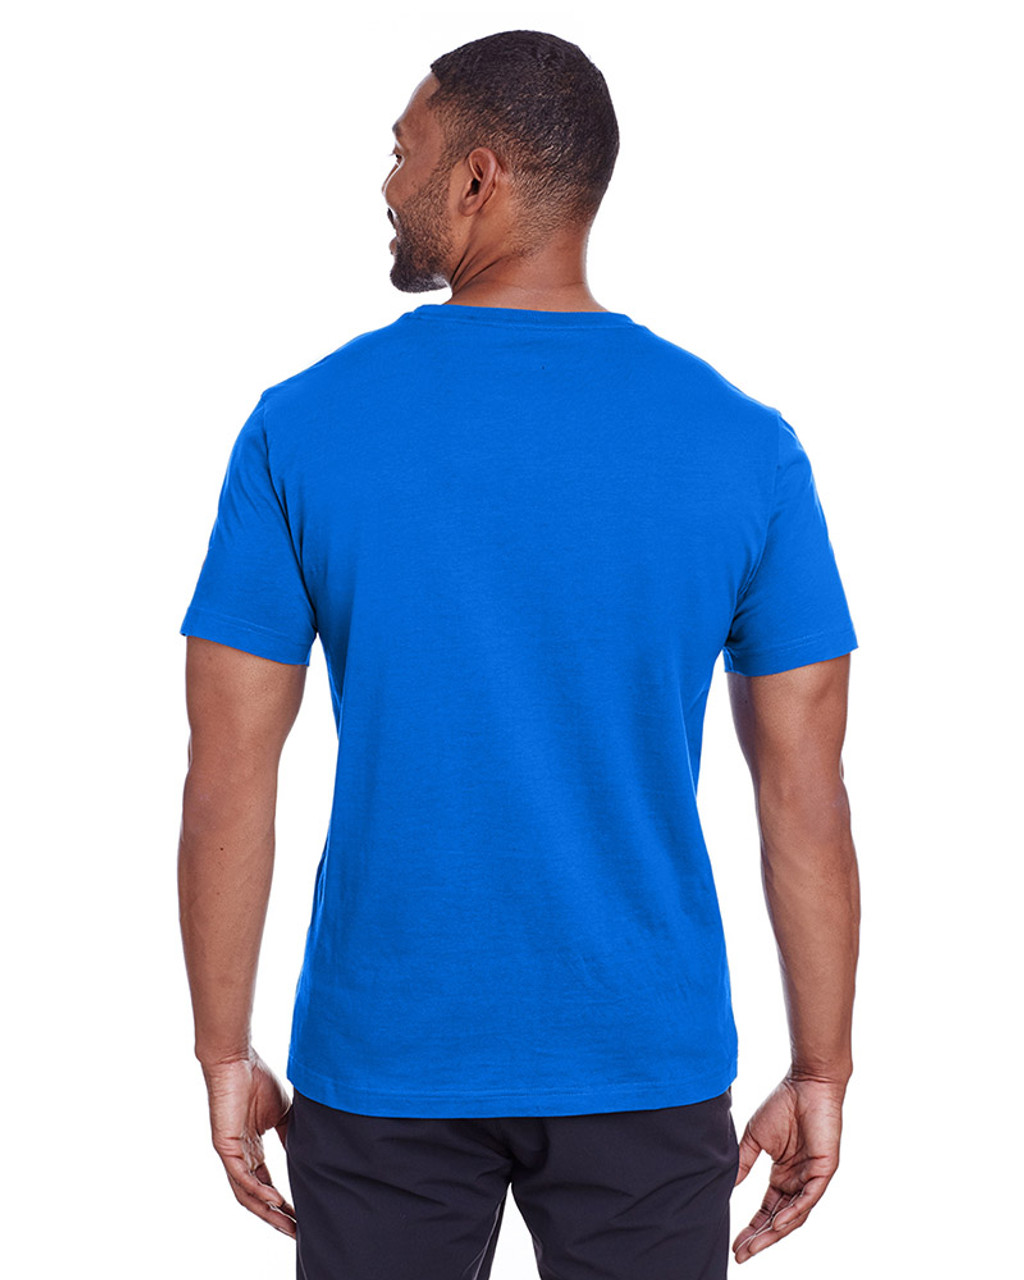 Lapis Blue/Quiet Shade - back, 582006 Puma Sport Essential Adult Logo T-Shirt | BlankClothing